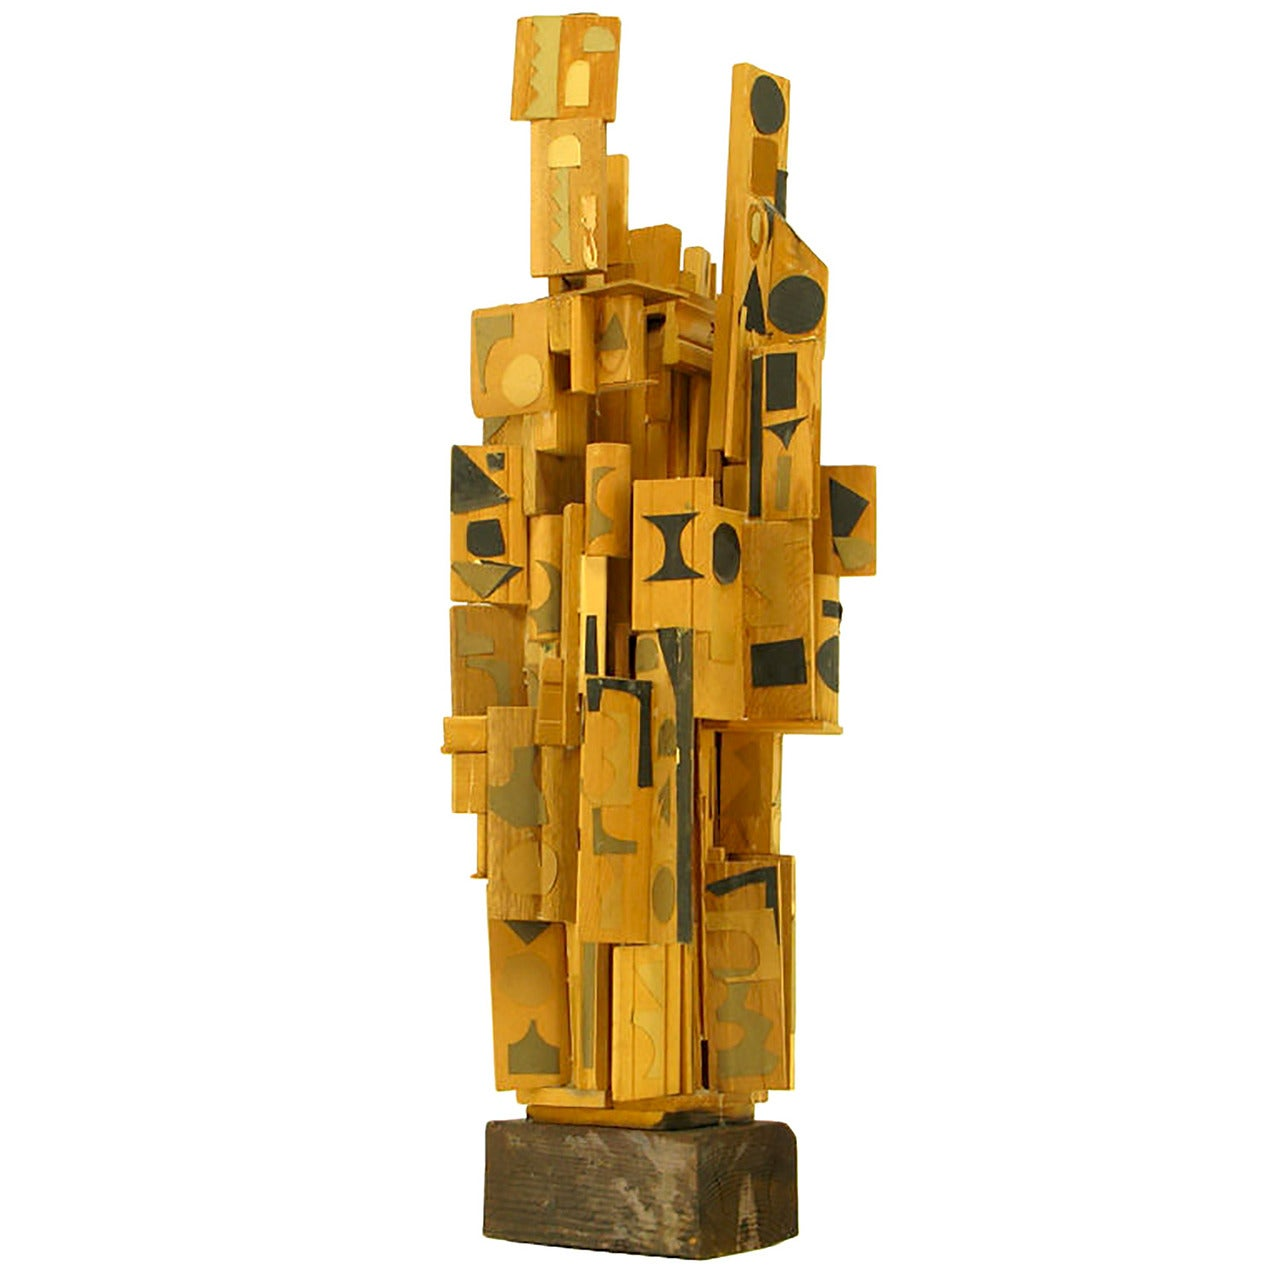 Outsider Art Wood Sculpture with Geometric Appliques